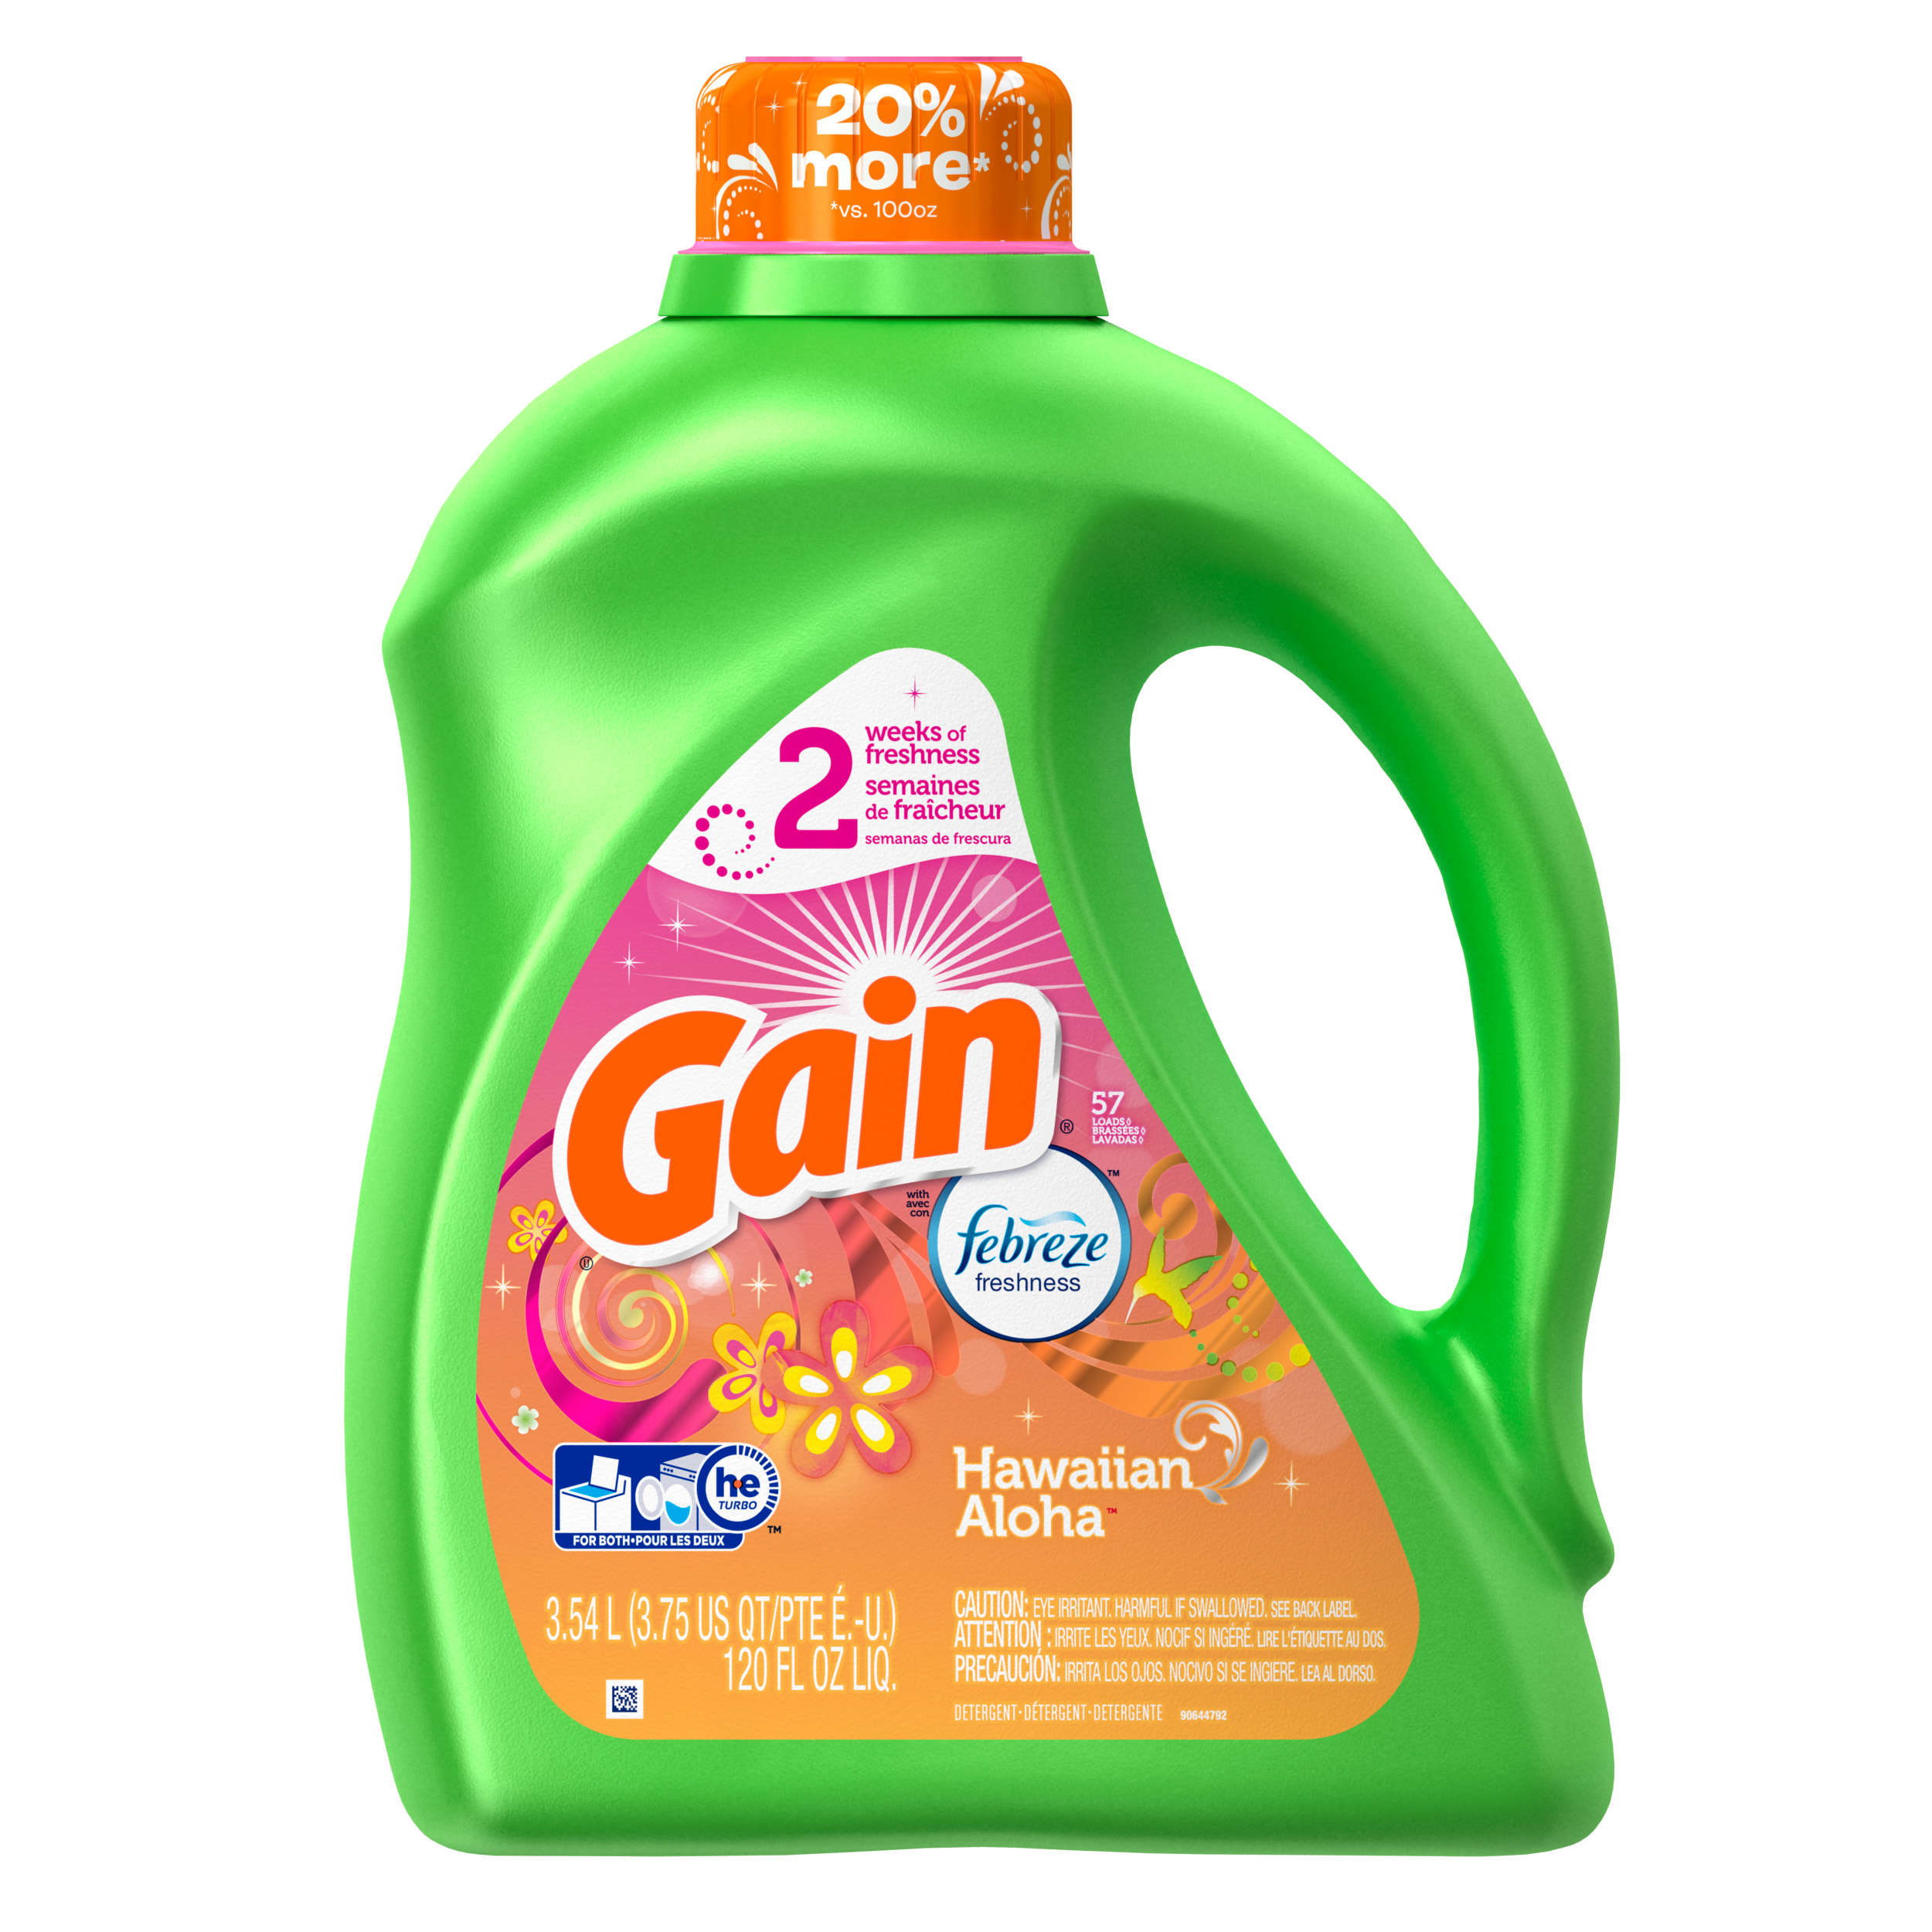 Gain Liquid Laundry Detergent, Hawaiian Aloha, 57 Loads 120 fl oz